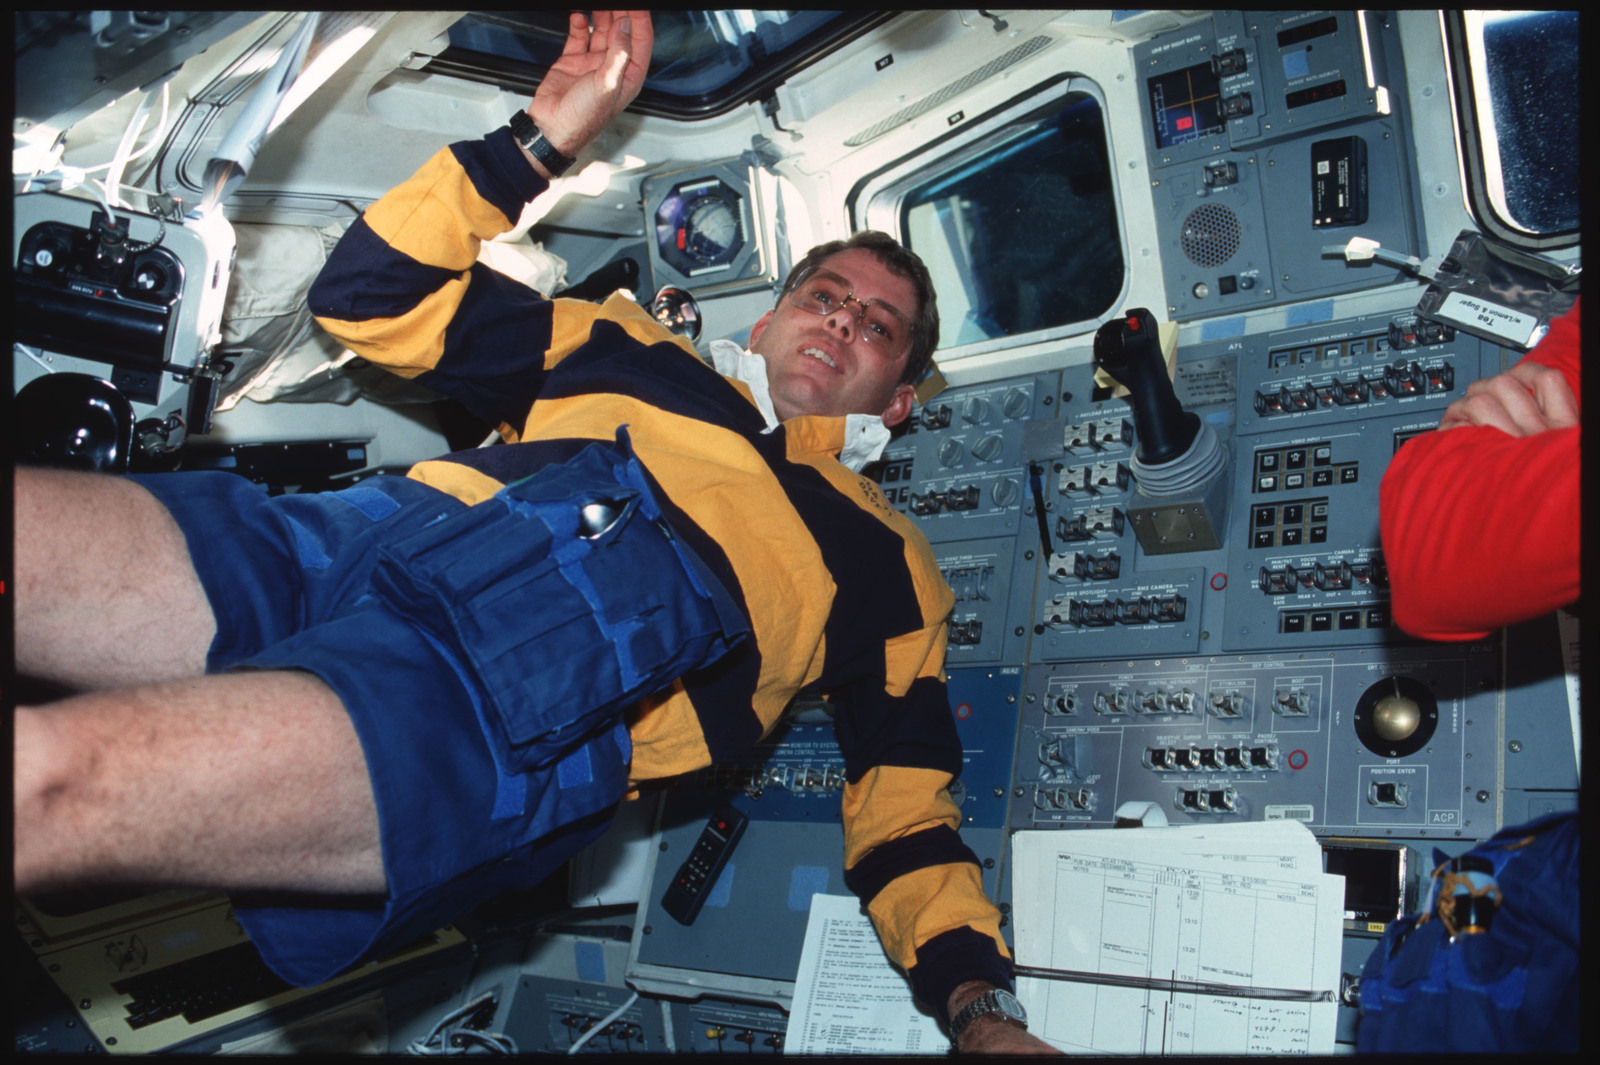 S45-16-023 - STS-045 - STS-45 crewmembers engage in various activities